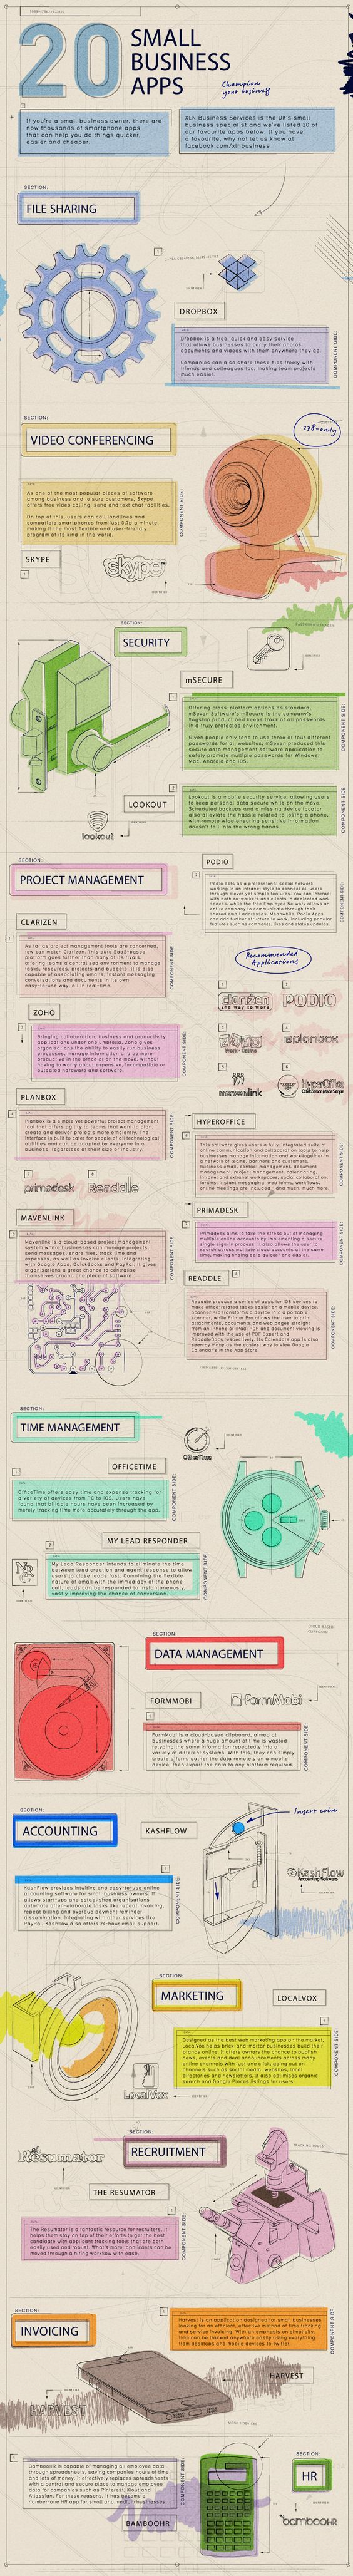 2187 best project management images on pinterest read more on tipsographic project management agile project management tools xflitez Images